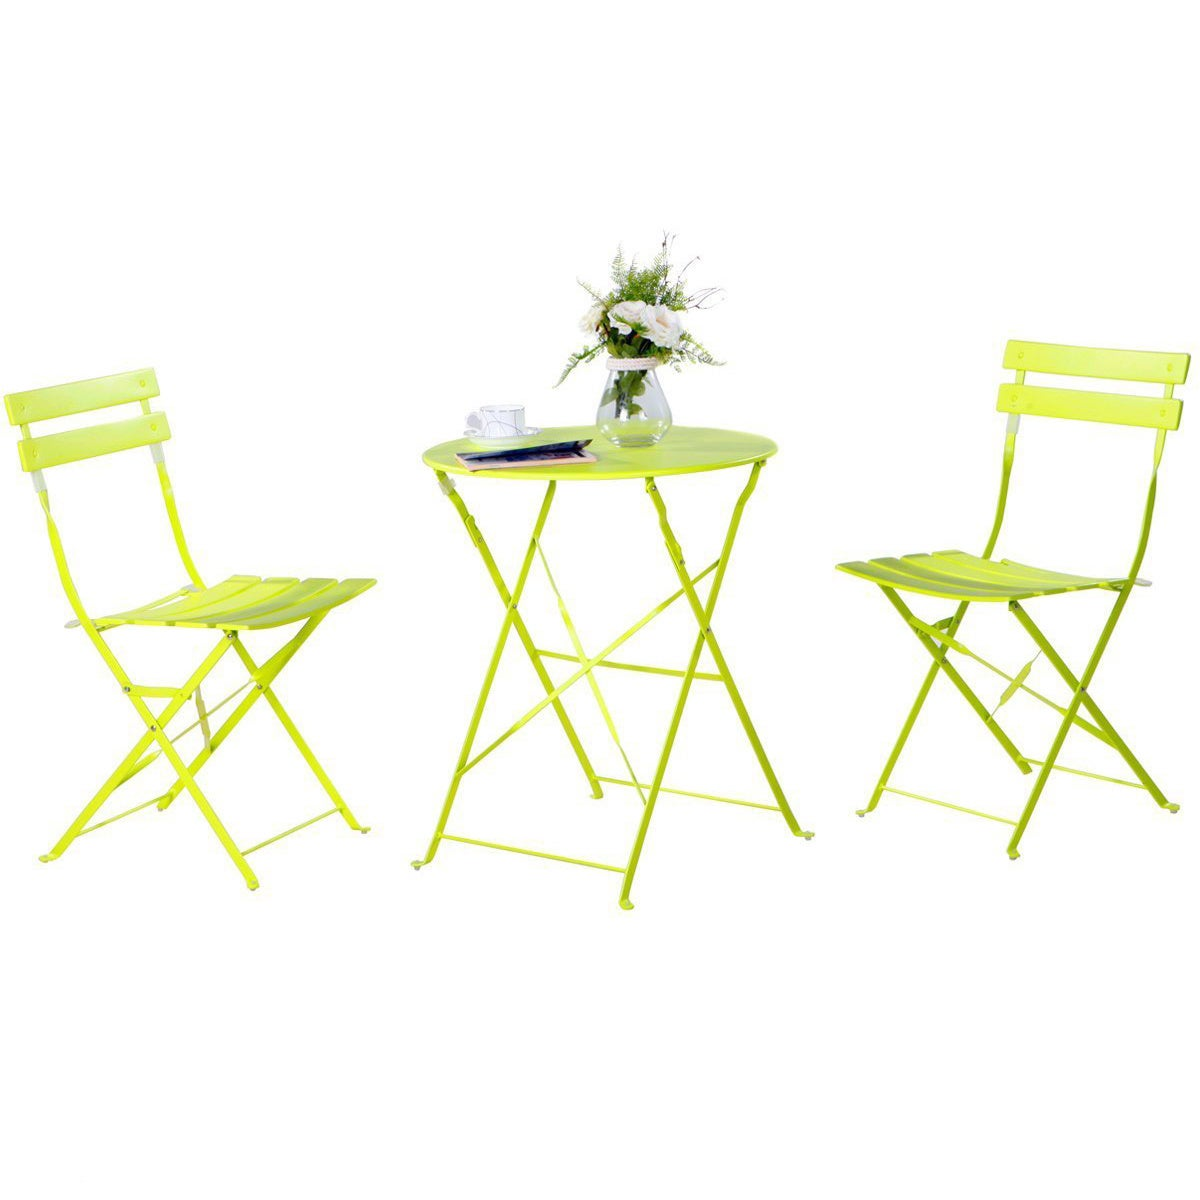 Shop Grand Patio Steel 3-piece Outdoor Folding Bistro Table Set - Free Shipping Today - Overstock.com - 12128035  sc 1 st  Overstock.com & Shop Grand Patio Steel 3-piece Outdoor Folding Bistro Table Set ...